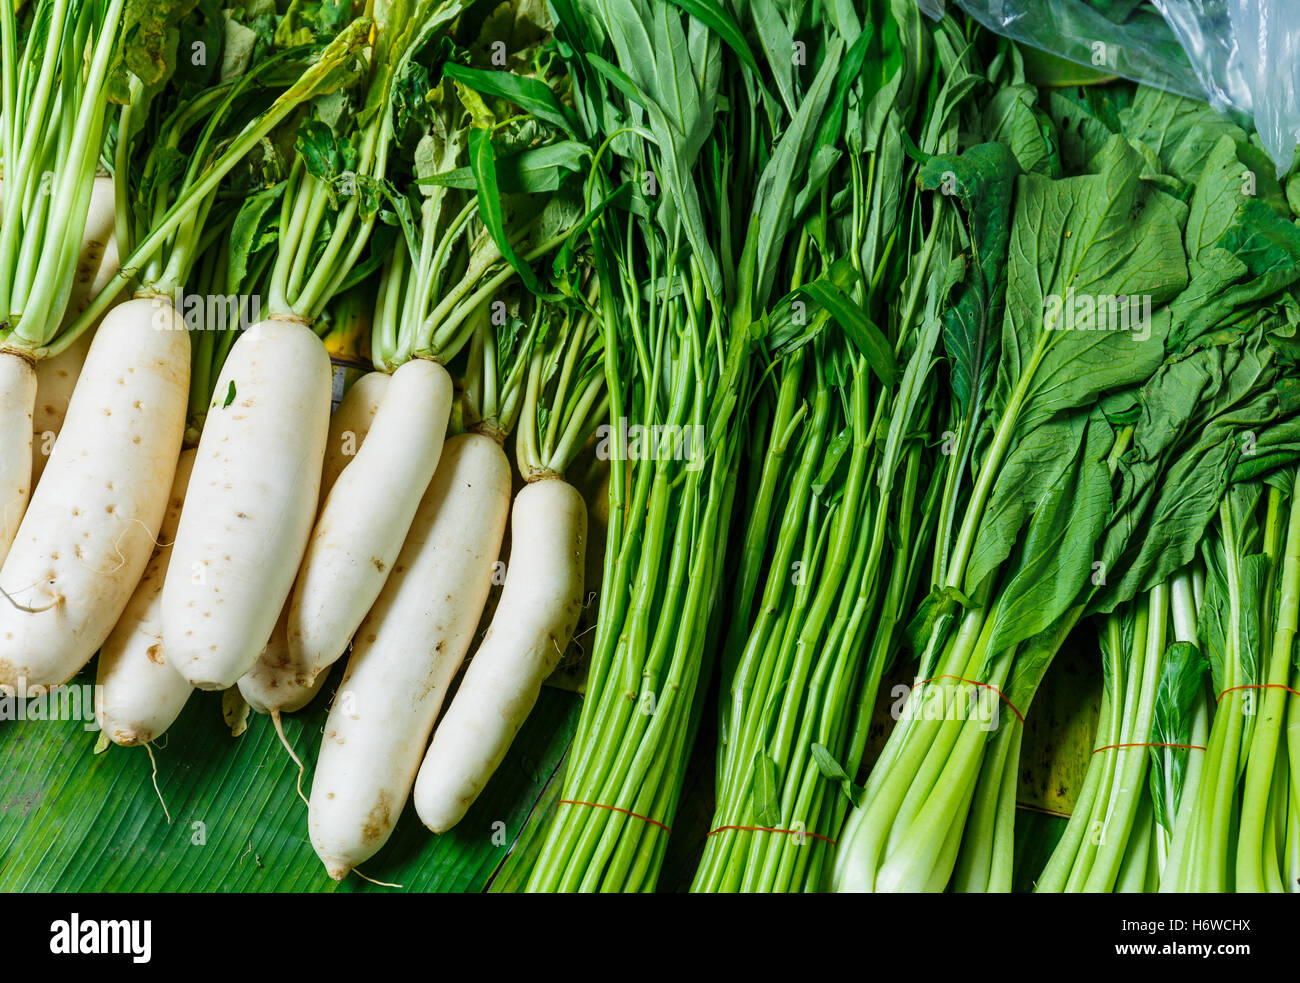 food aliment sell agriculture farming harvest root vegetable chinese stalk stem radish product celery organic chop - Stock Image